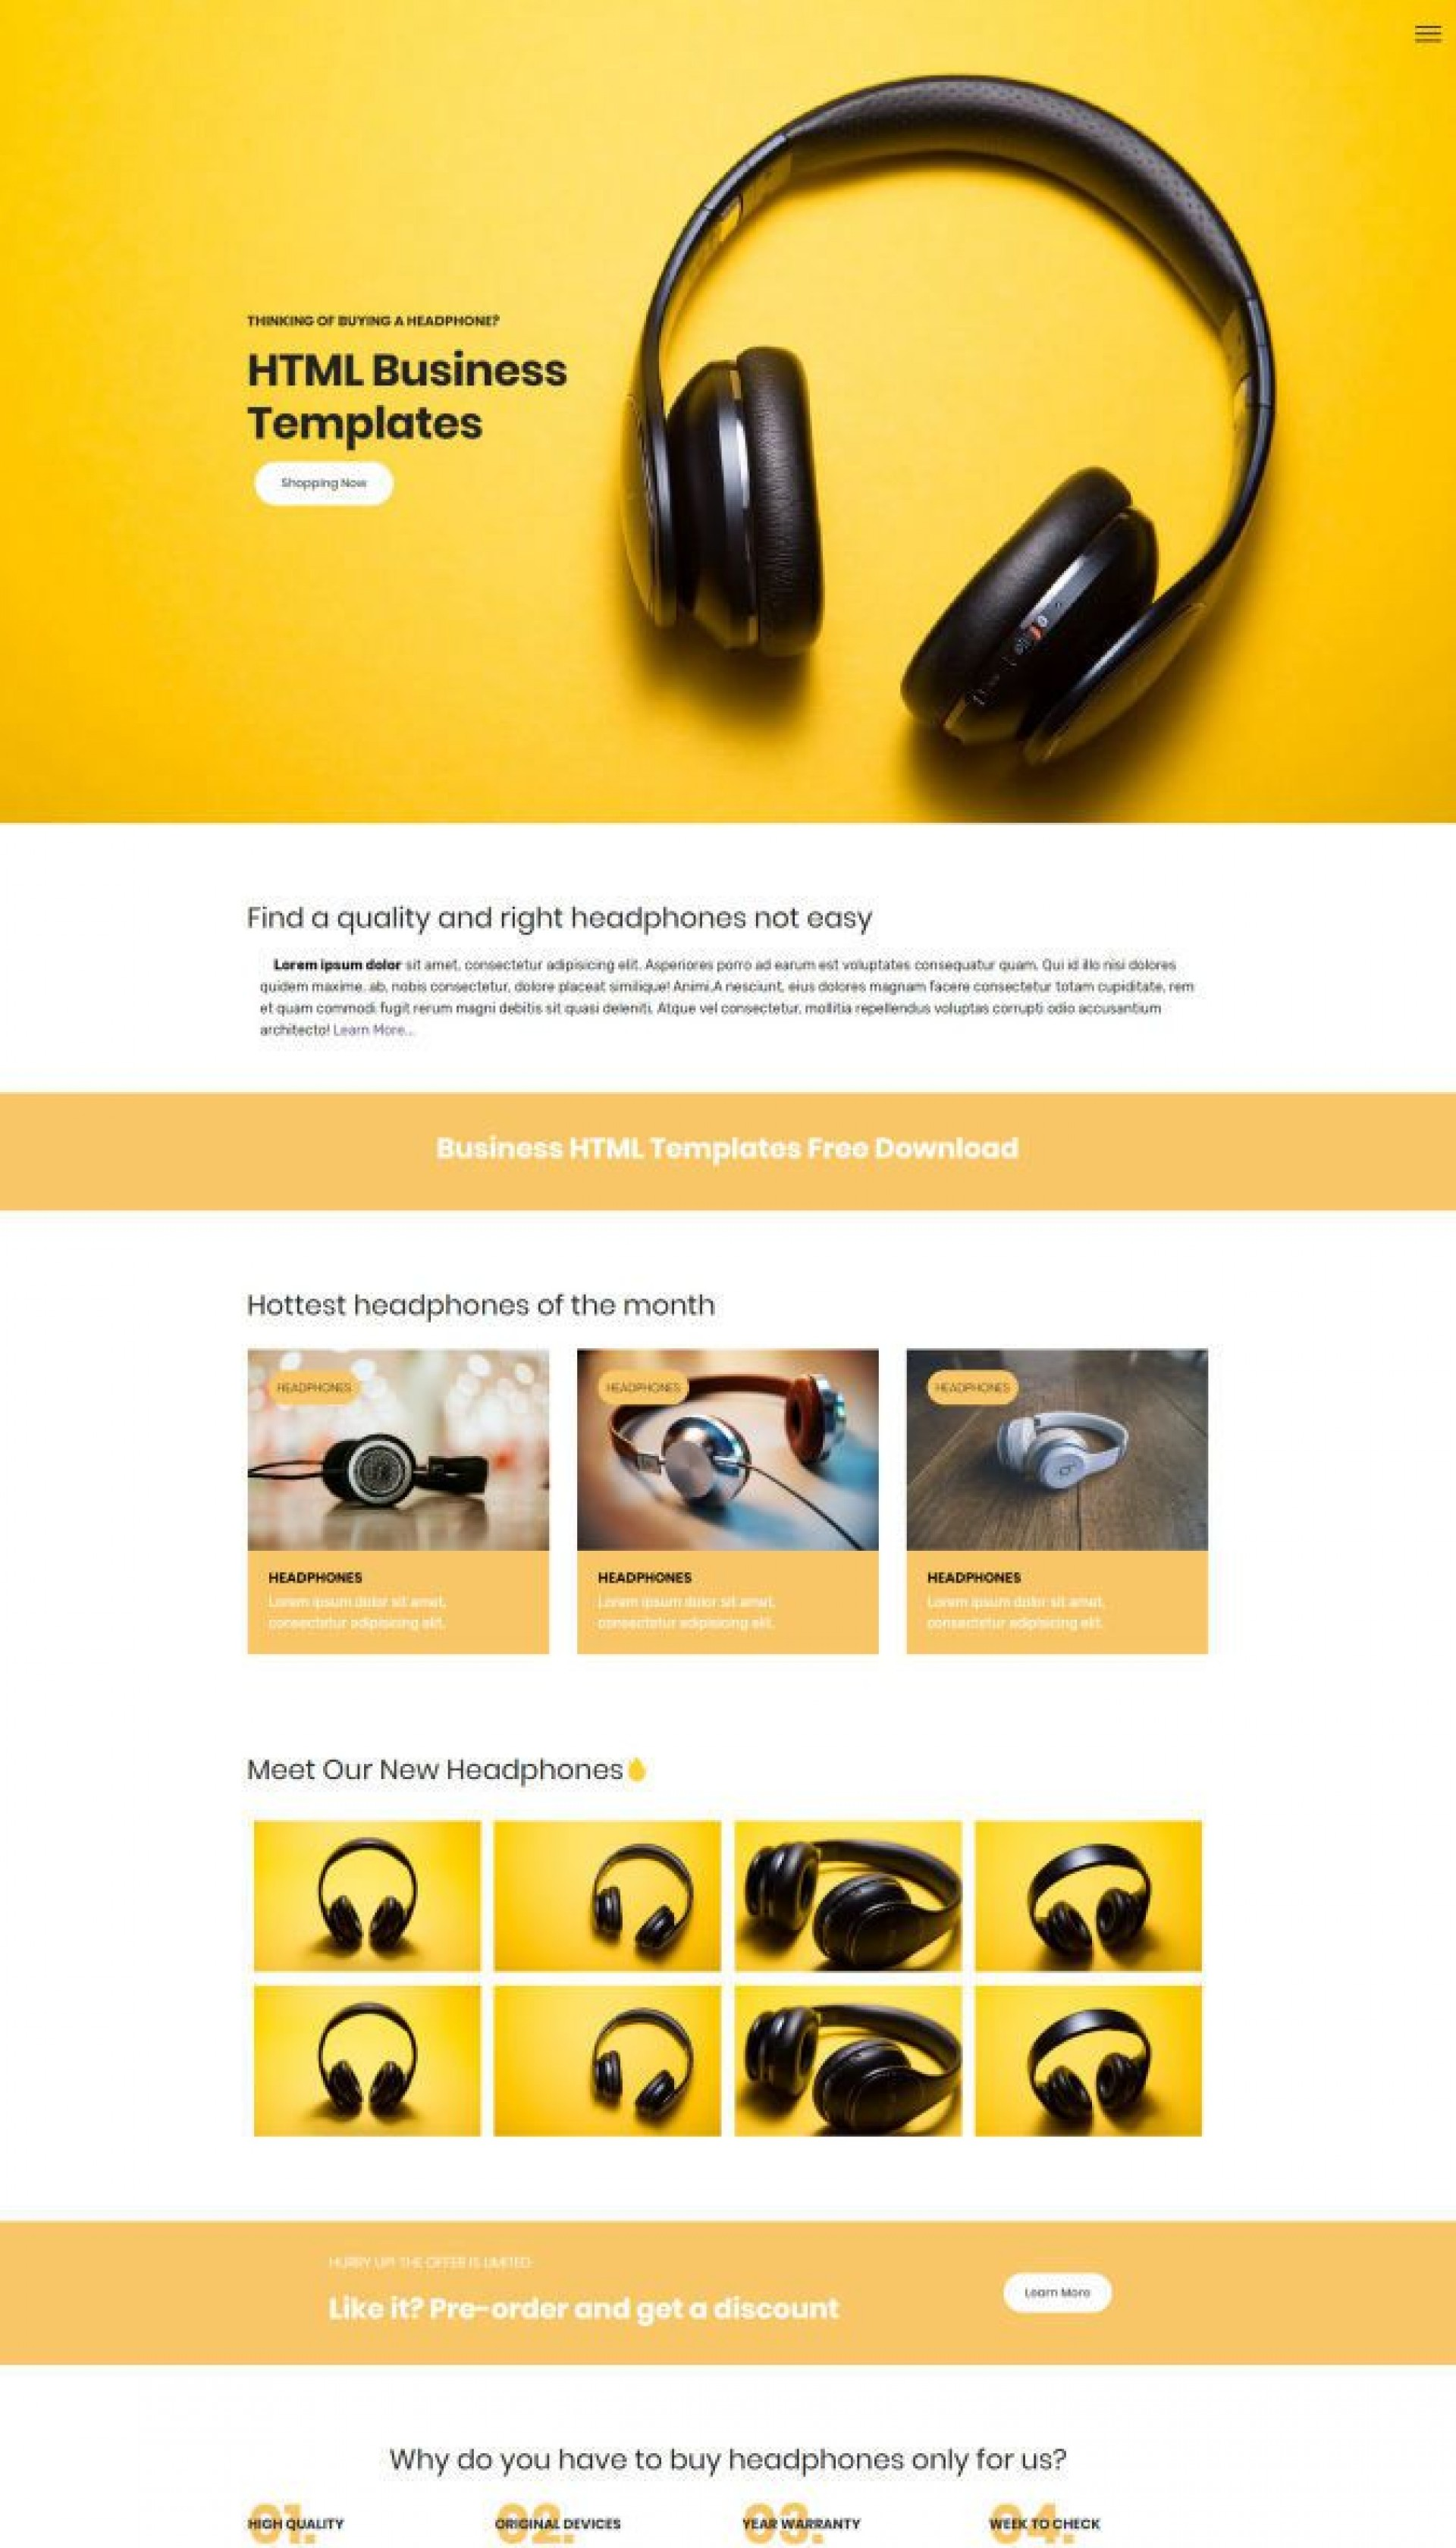 002 Outstanding Free Html Template Download Sample  For Online Shopping Website Simple Blog Photo Gallery1920